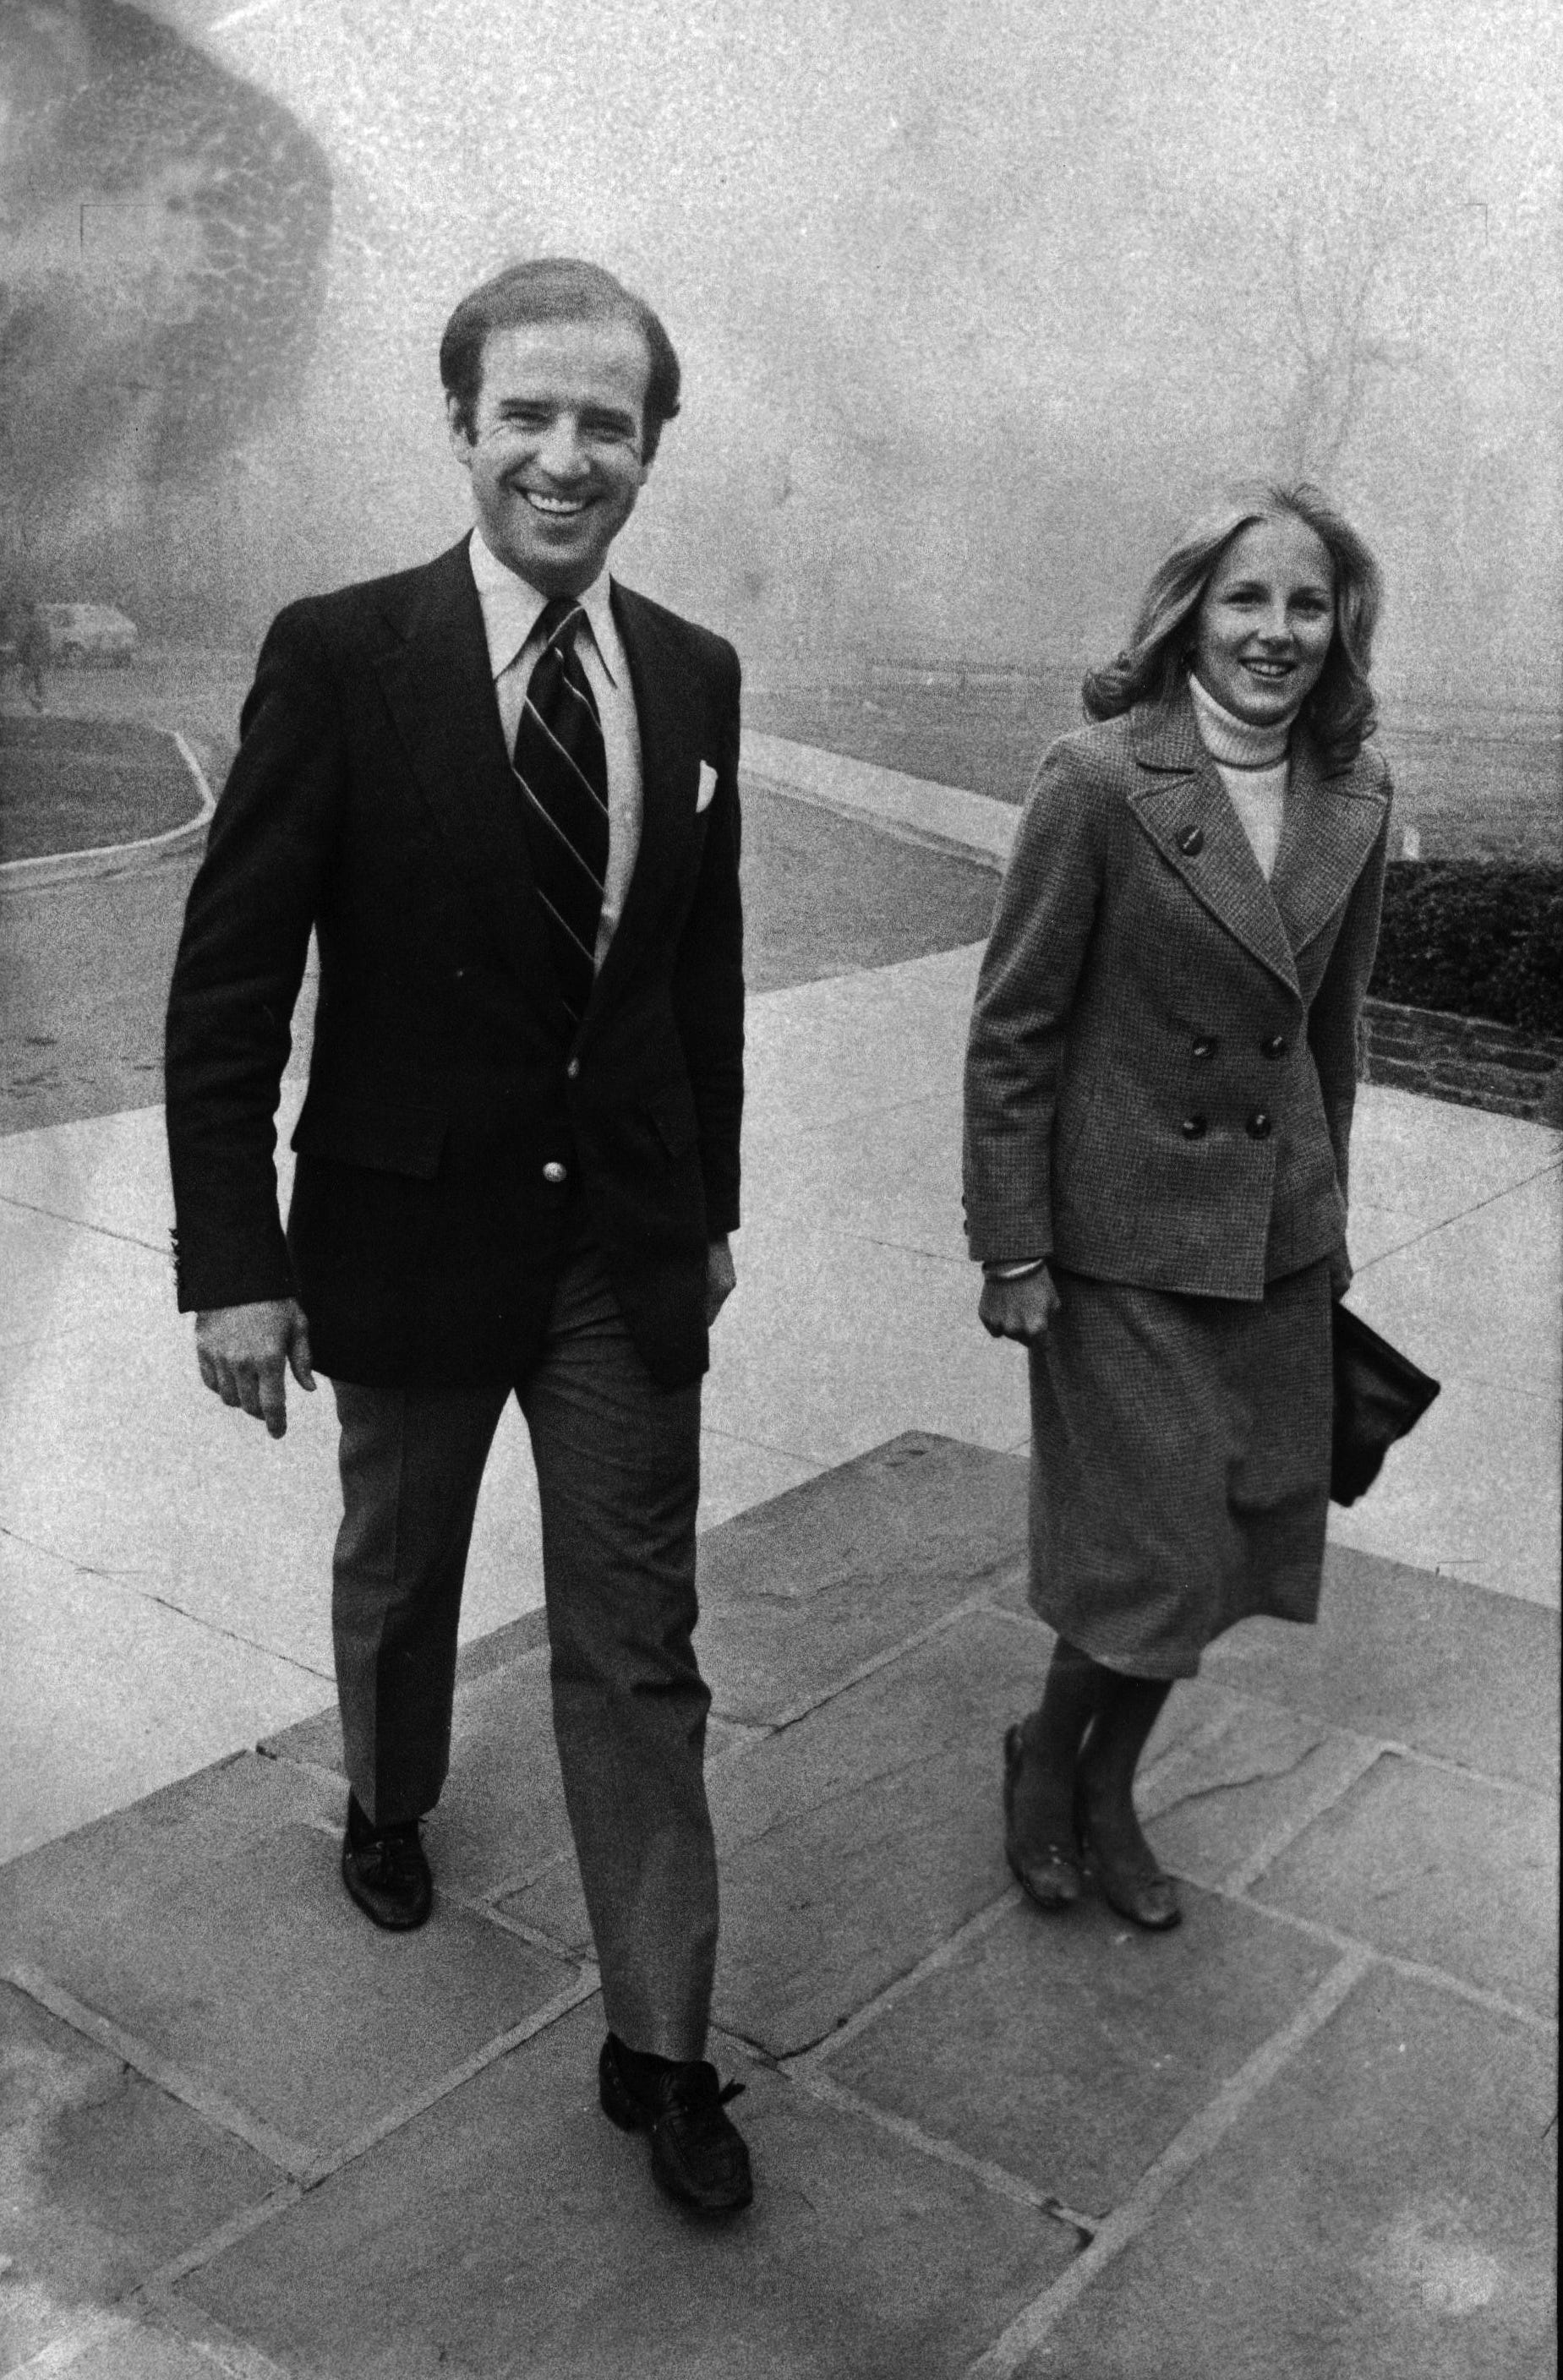 Jill Always Wanted To Be Her Own Person Joe Biden Made That Complicated